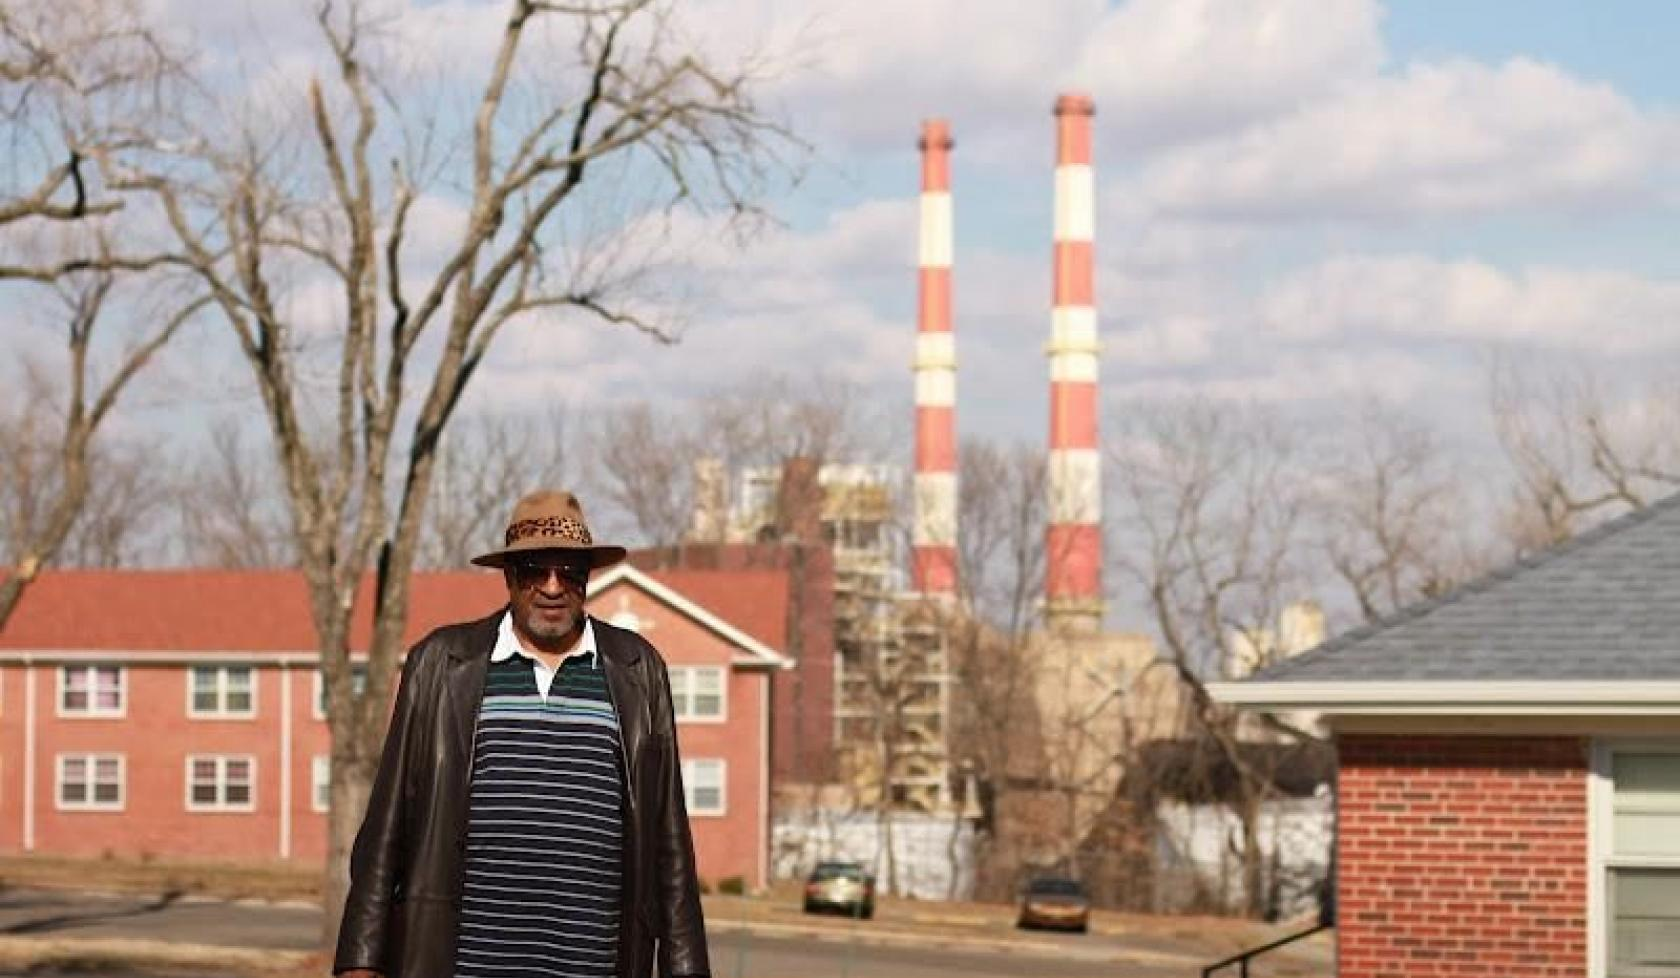 A man stands in the foreground of a neighborhood with brick multifamily buildings and smoke stacks on the horizon.